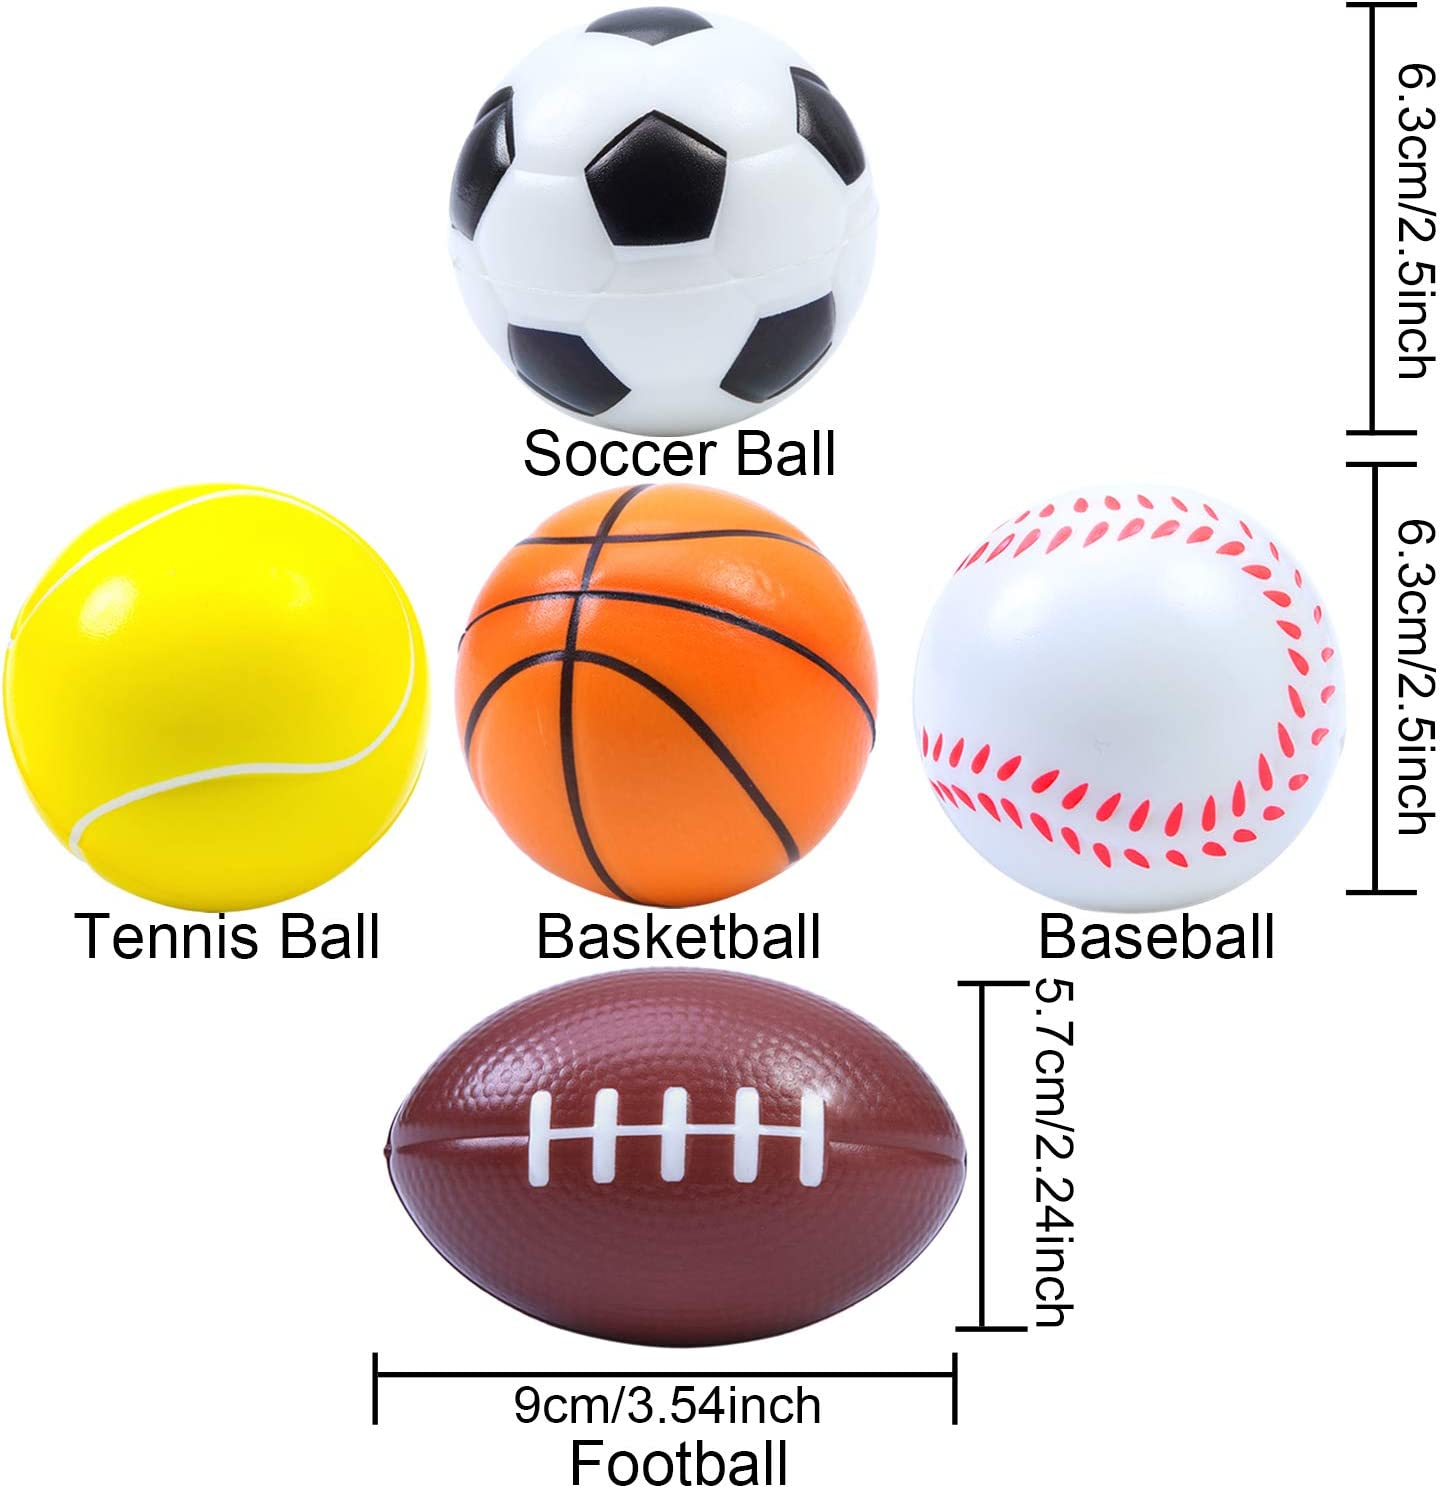 24 PACK MINI STRESS SPORTS BALLS BASKETBALL SOCCER TENNIS BASEBALL BALL SQUEEZE